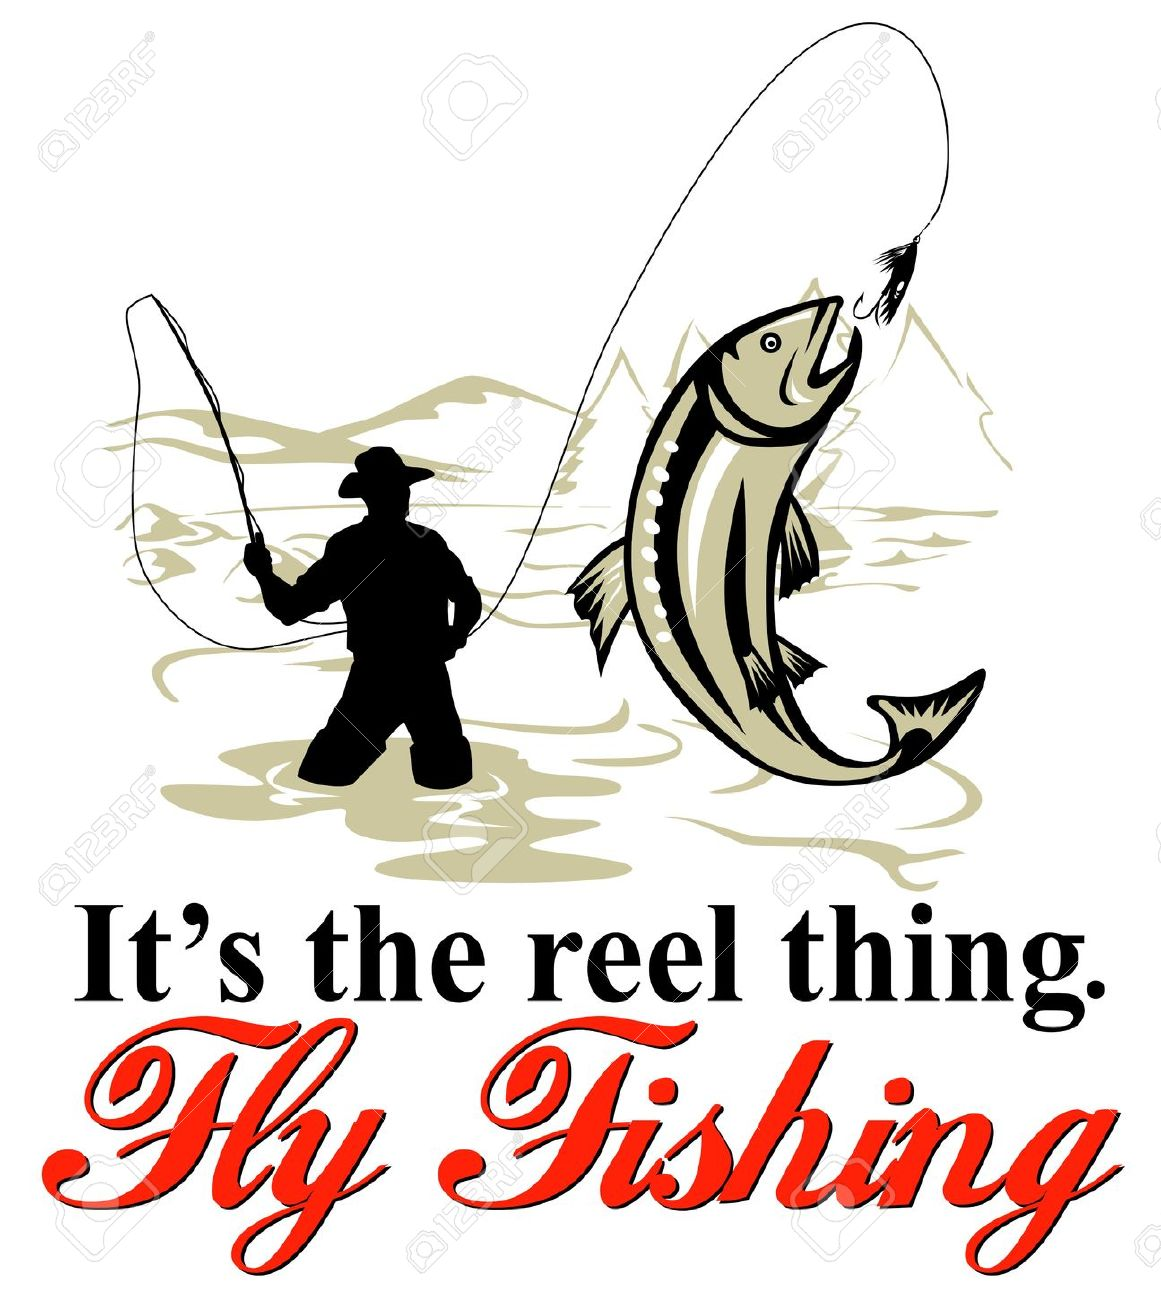 graphic design illustration of Fly fisherman catching trout with fly reel with text wording